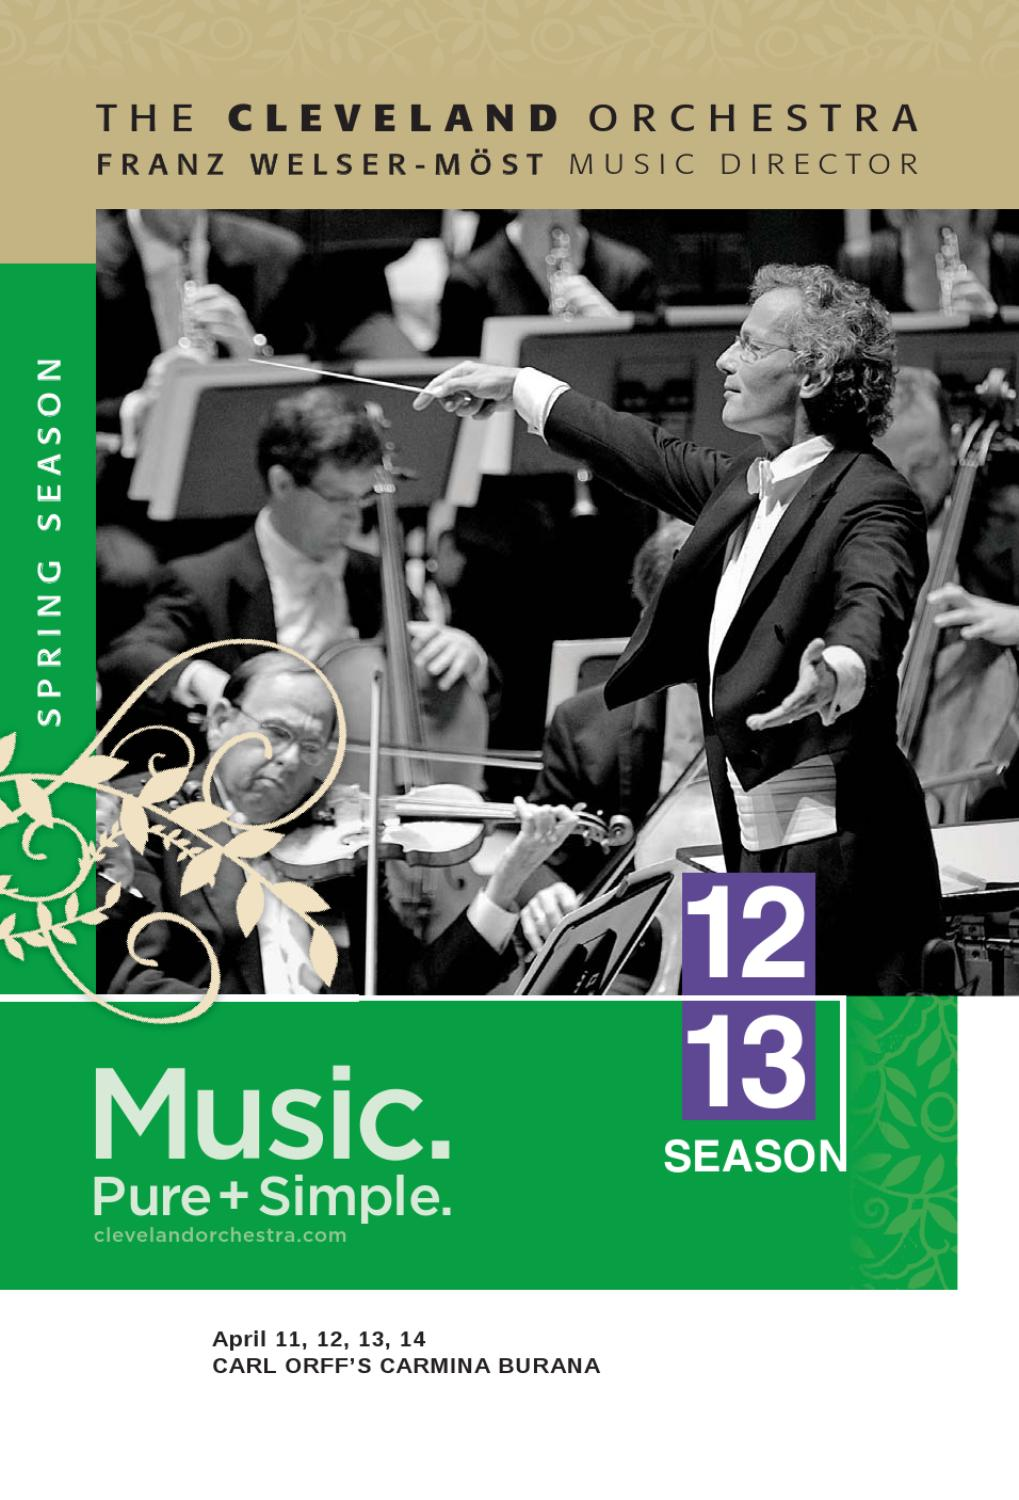 Nissan Of Streetsboro >> The Cleveland Orchestra April 11-14 Concerts by Live